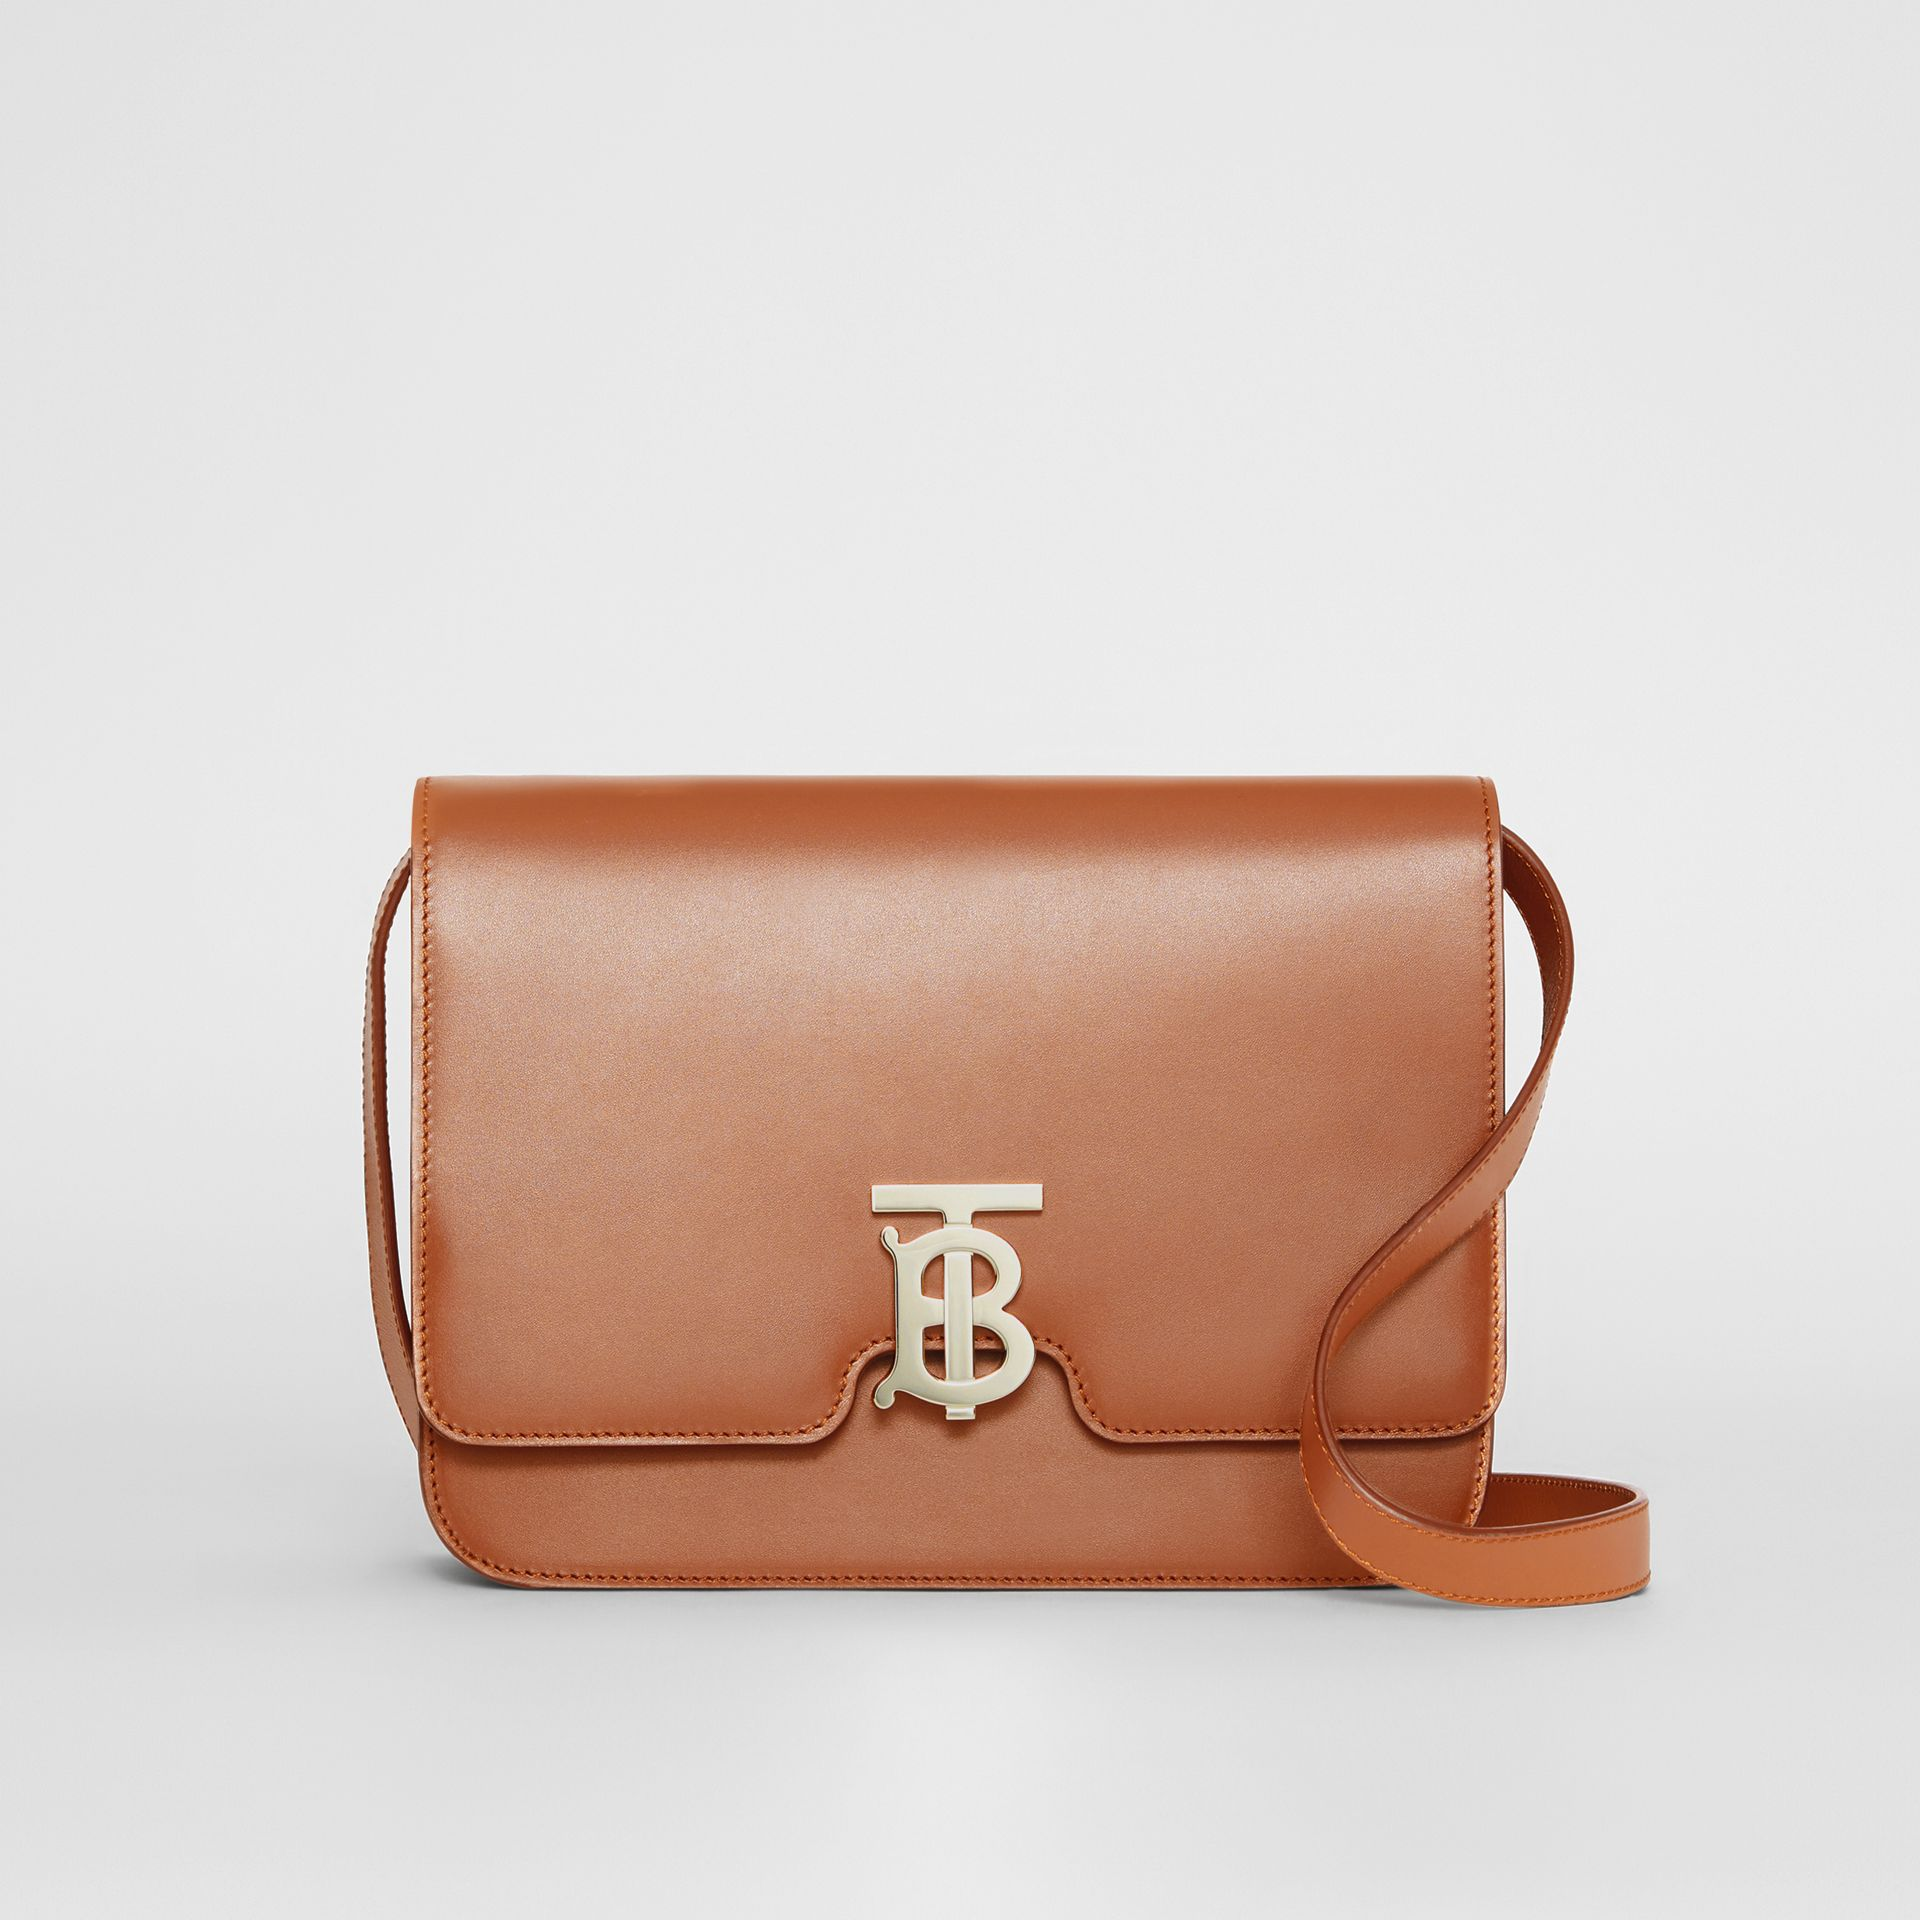 Medium Leather TB Bag in Malt Brown - Women | Burberry Hong Kong - gallery image 0